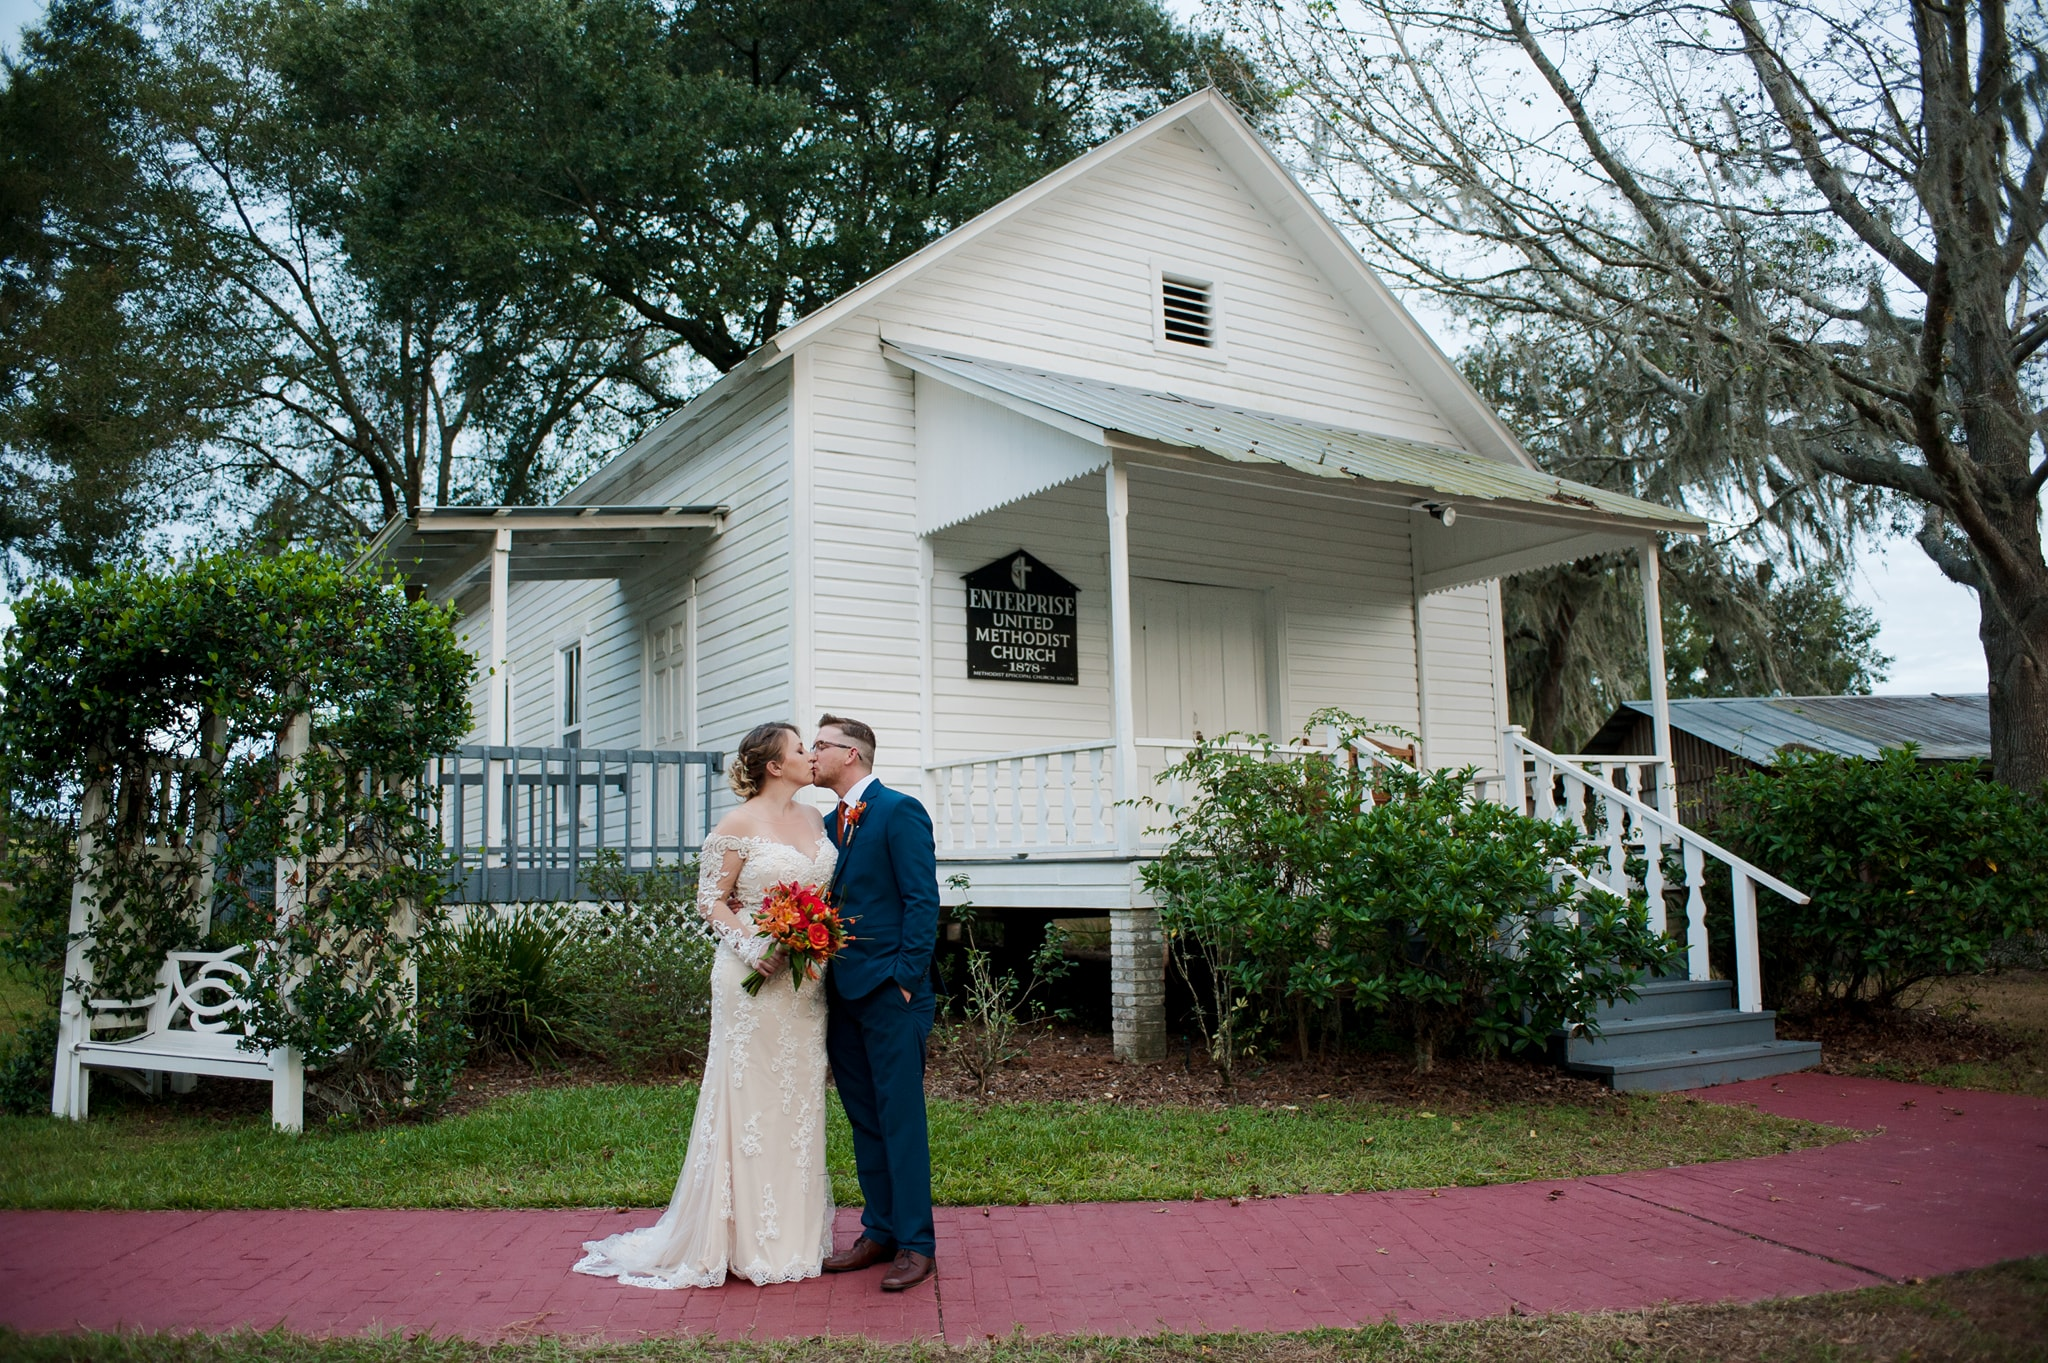 wedding pics by christina strong 2018 8 Church